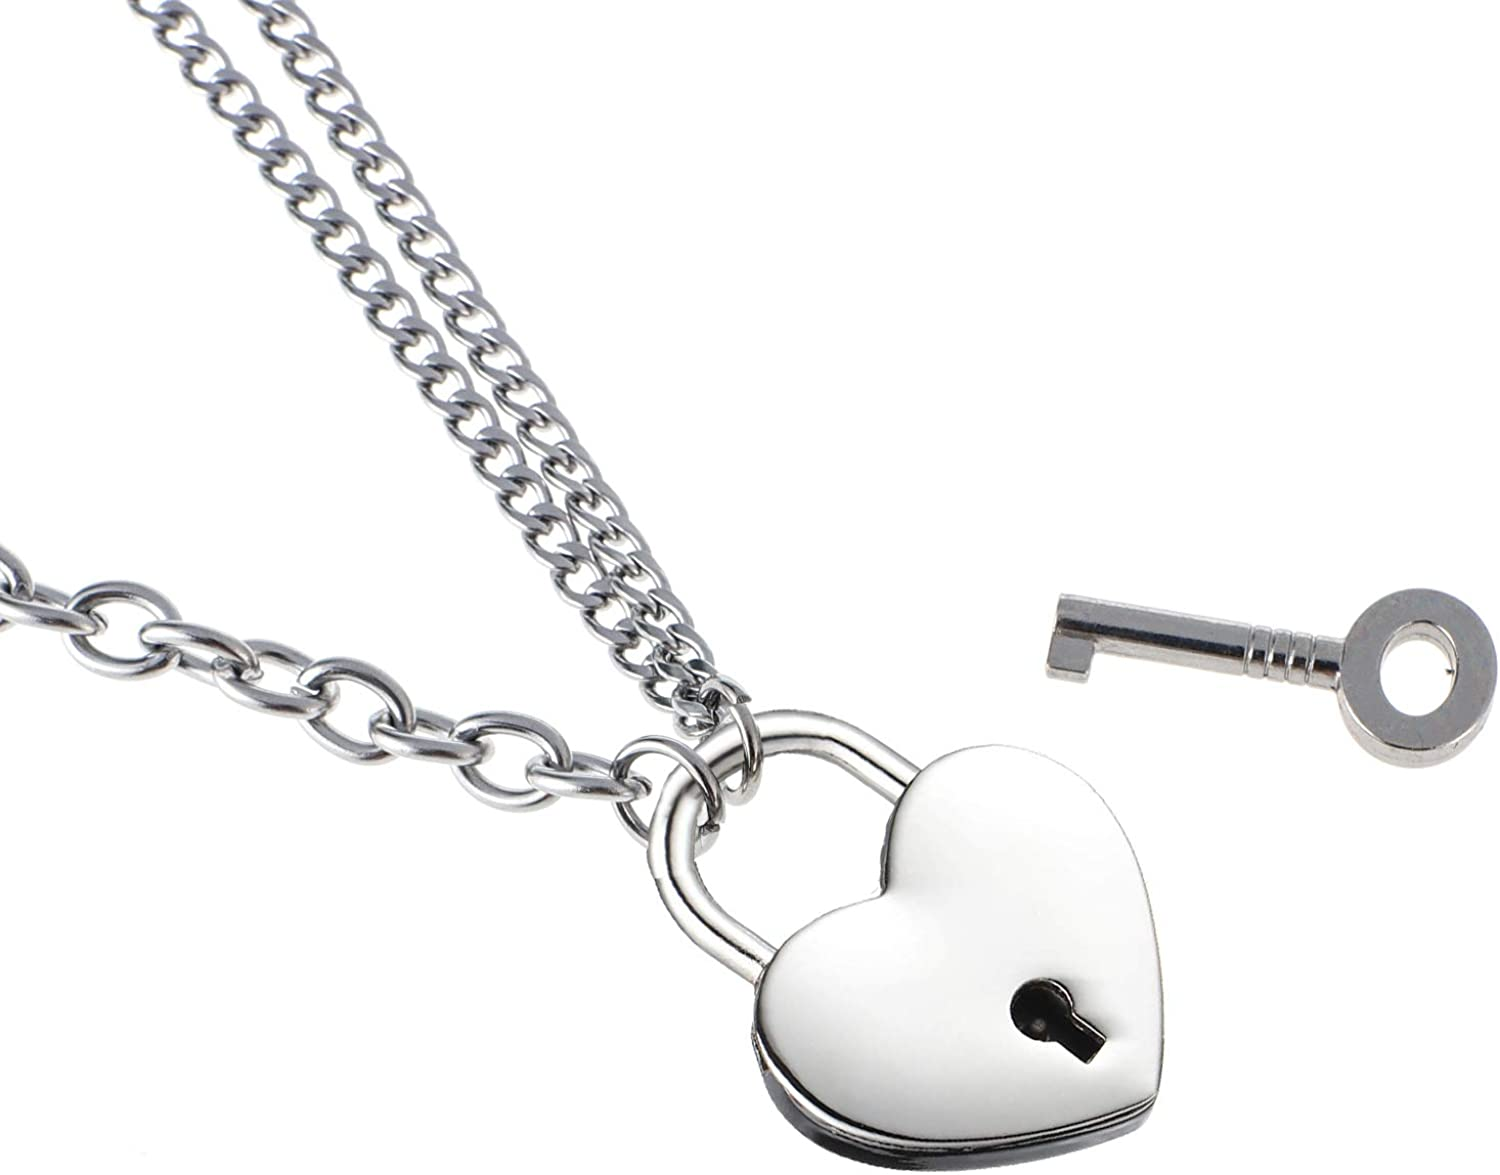 LEWECEEO Lock Necklace Stainless Steel Collar Byzantine Chain Necklace Heart Padlock Necklace for Women Men